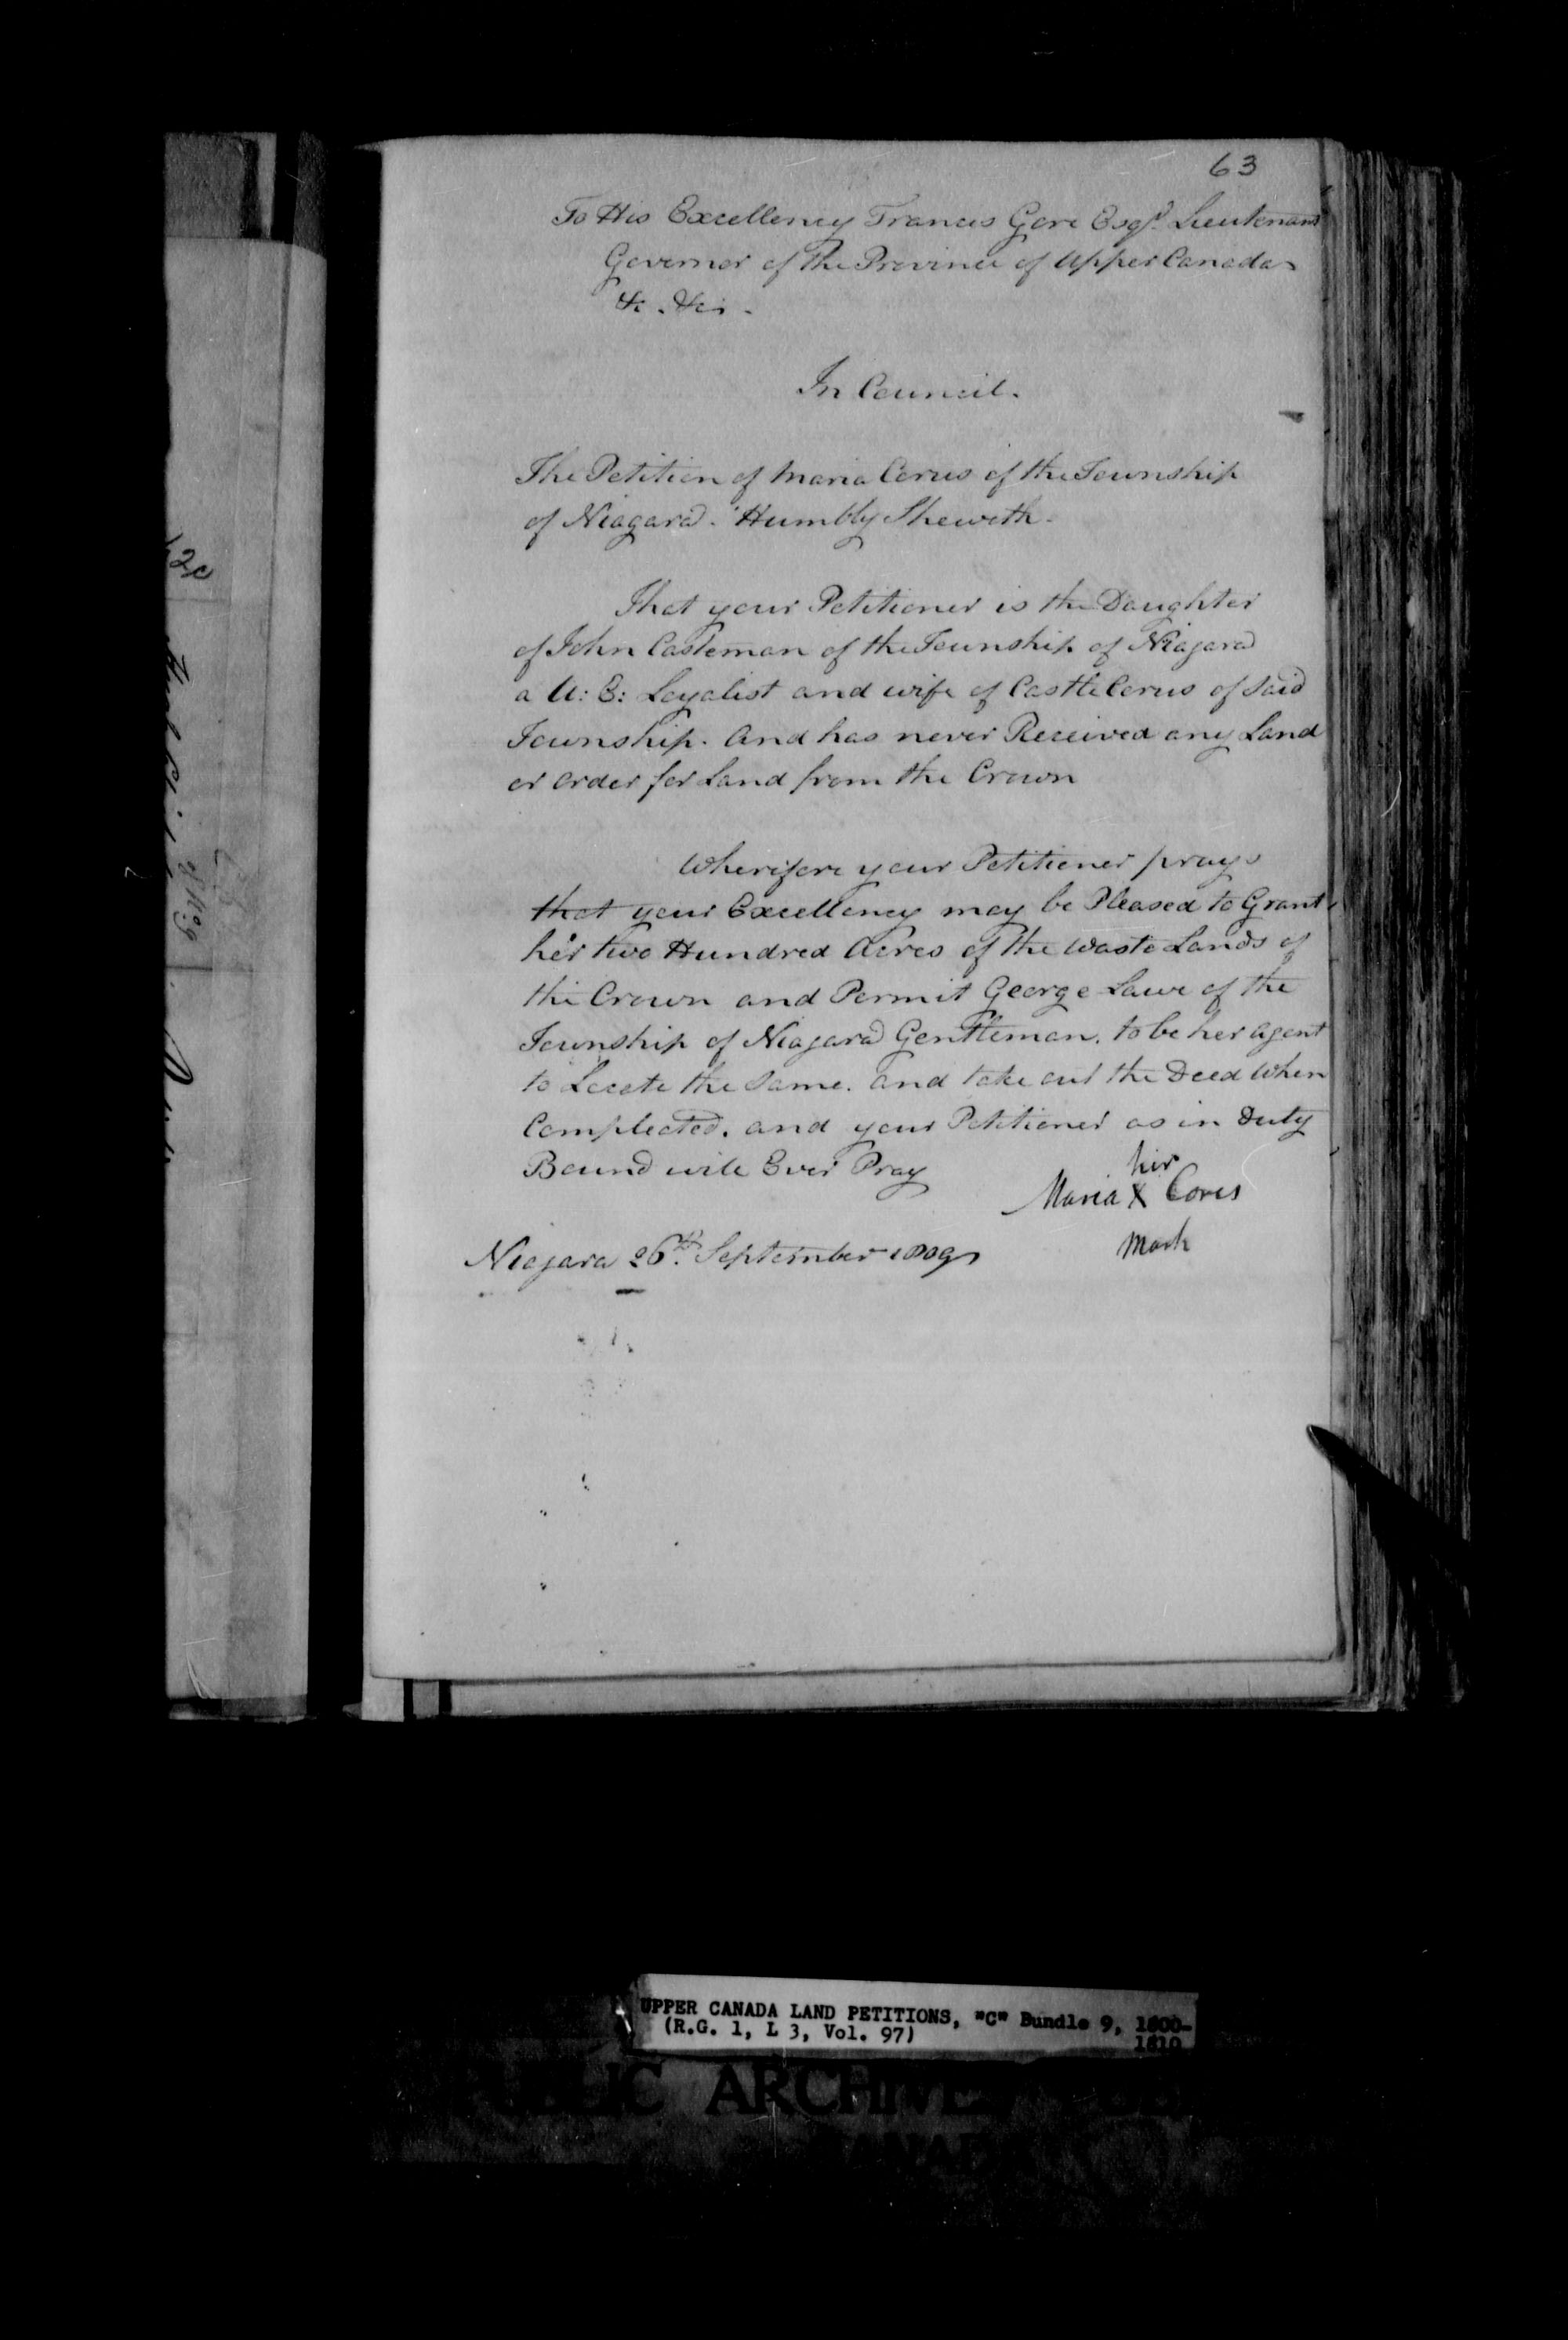 Title: Upper Canada Land Petitions (1763-1865) - Mikan Number: 205131 - Microform: c-1651